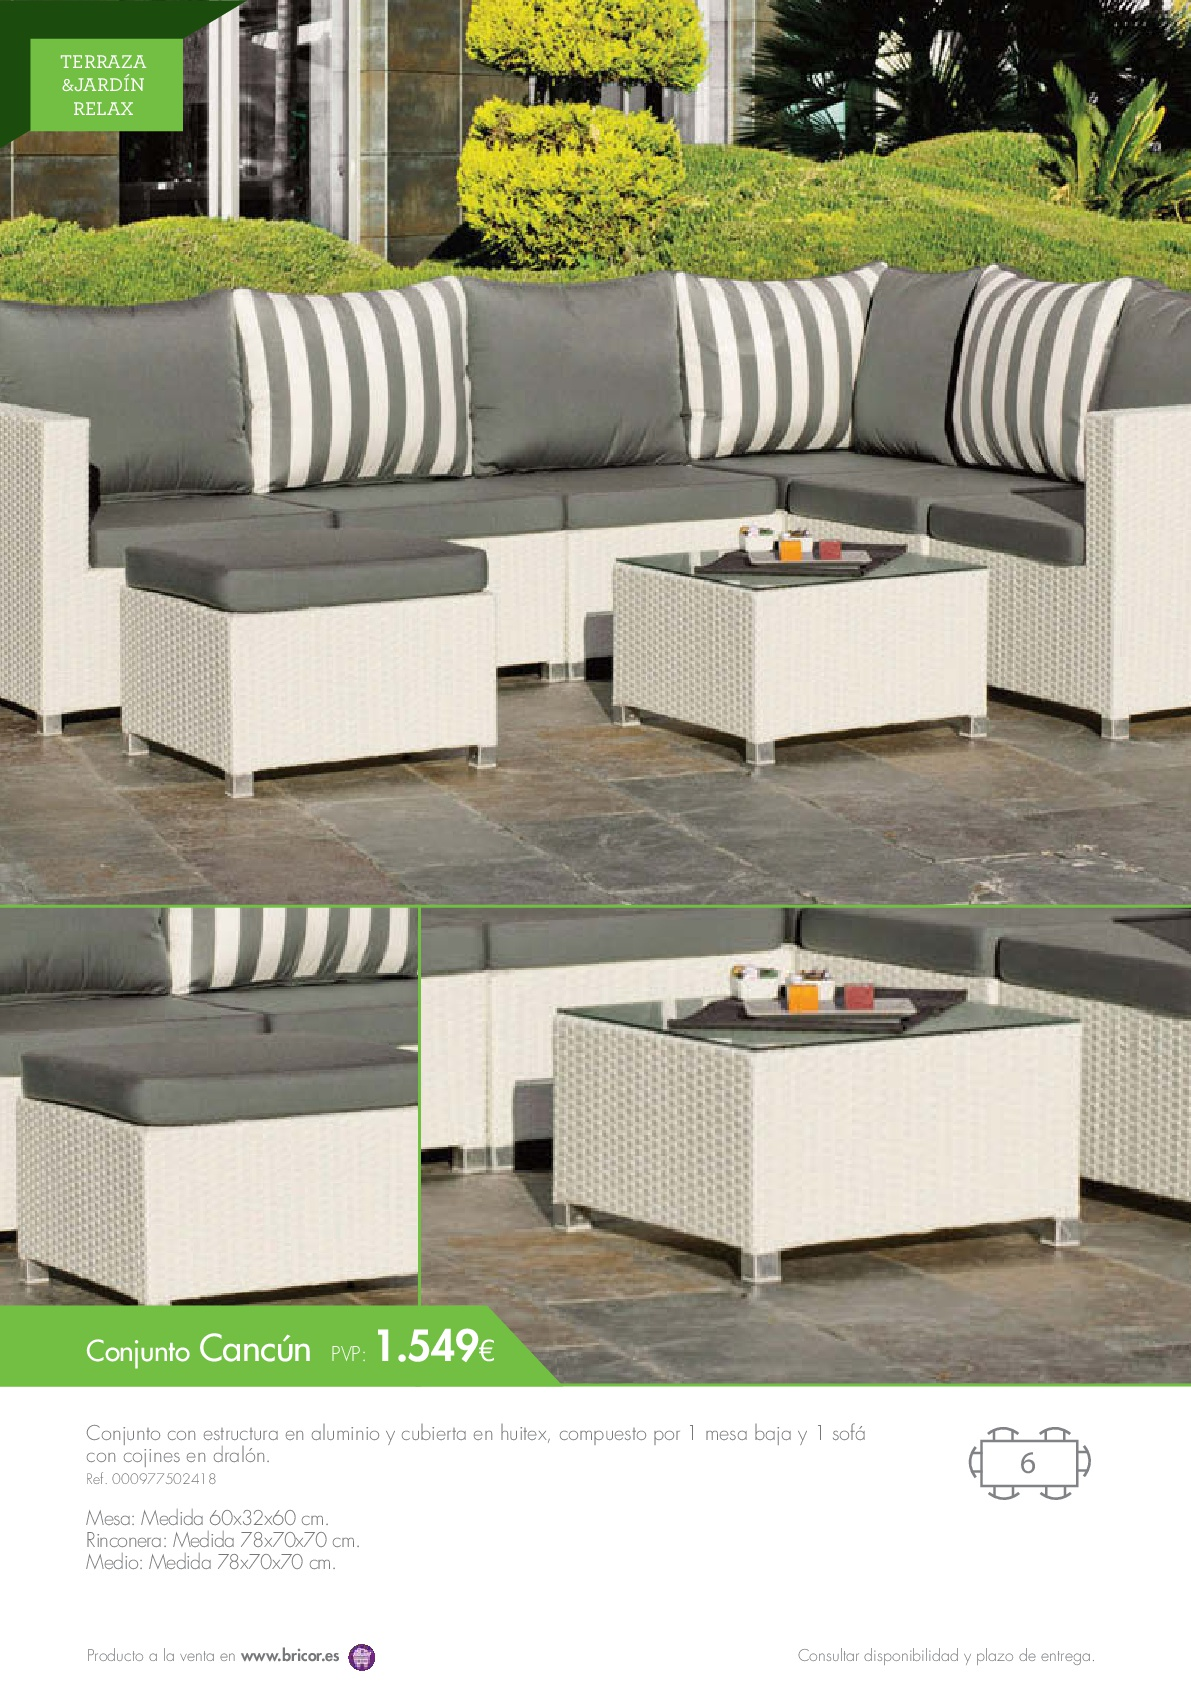 Bricor muebles jardin 201666 revista muebles for Muebles jardin diseno